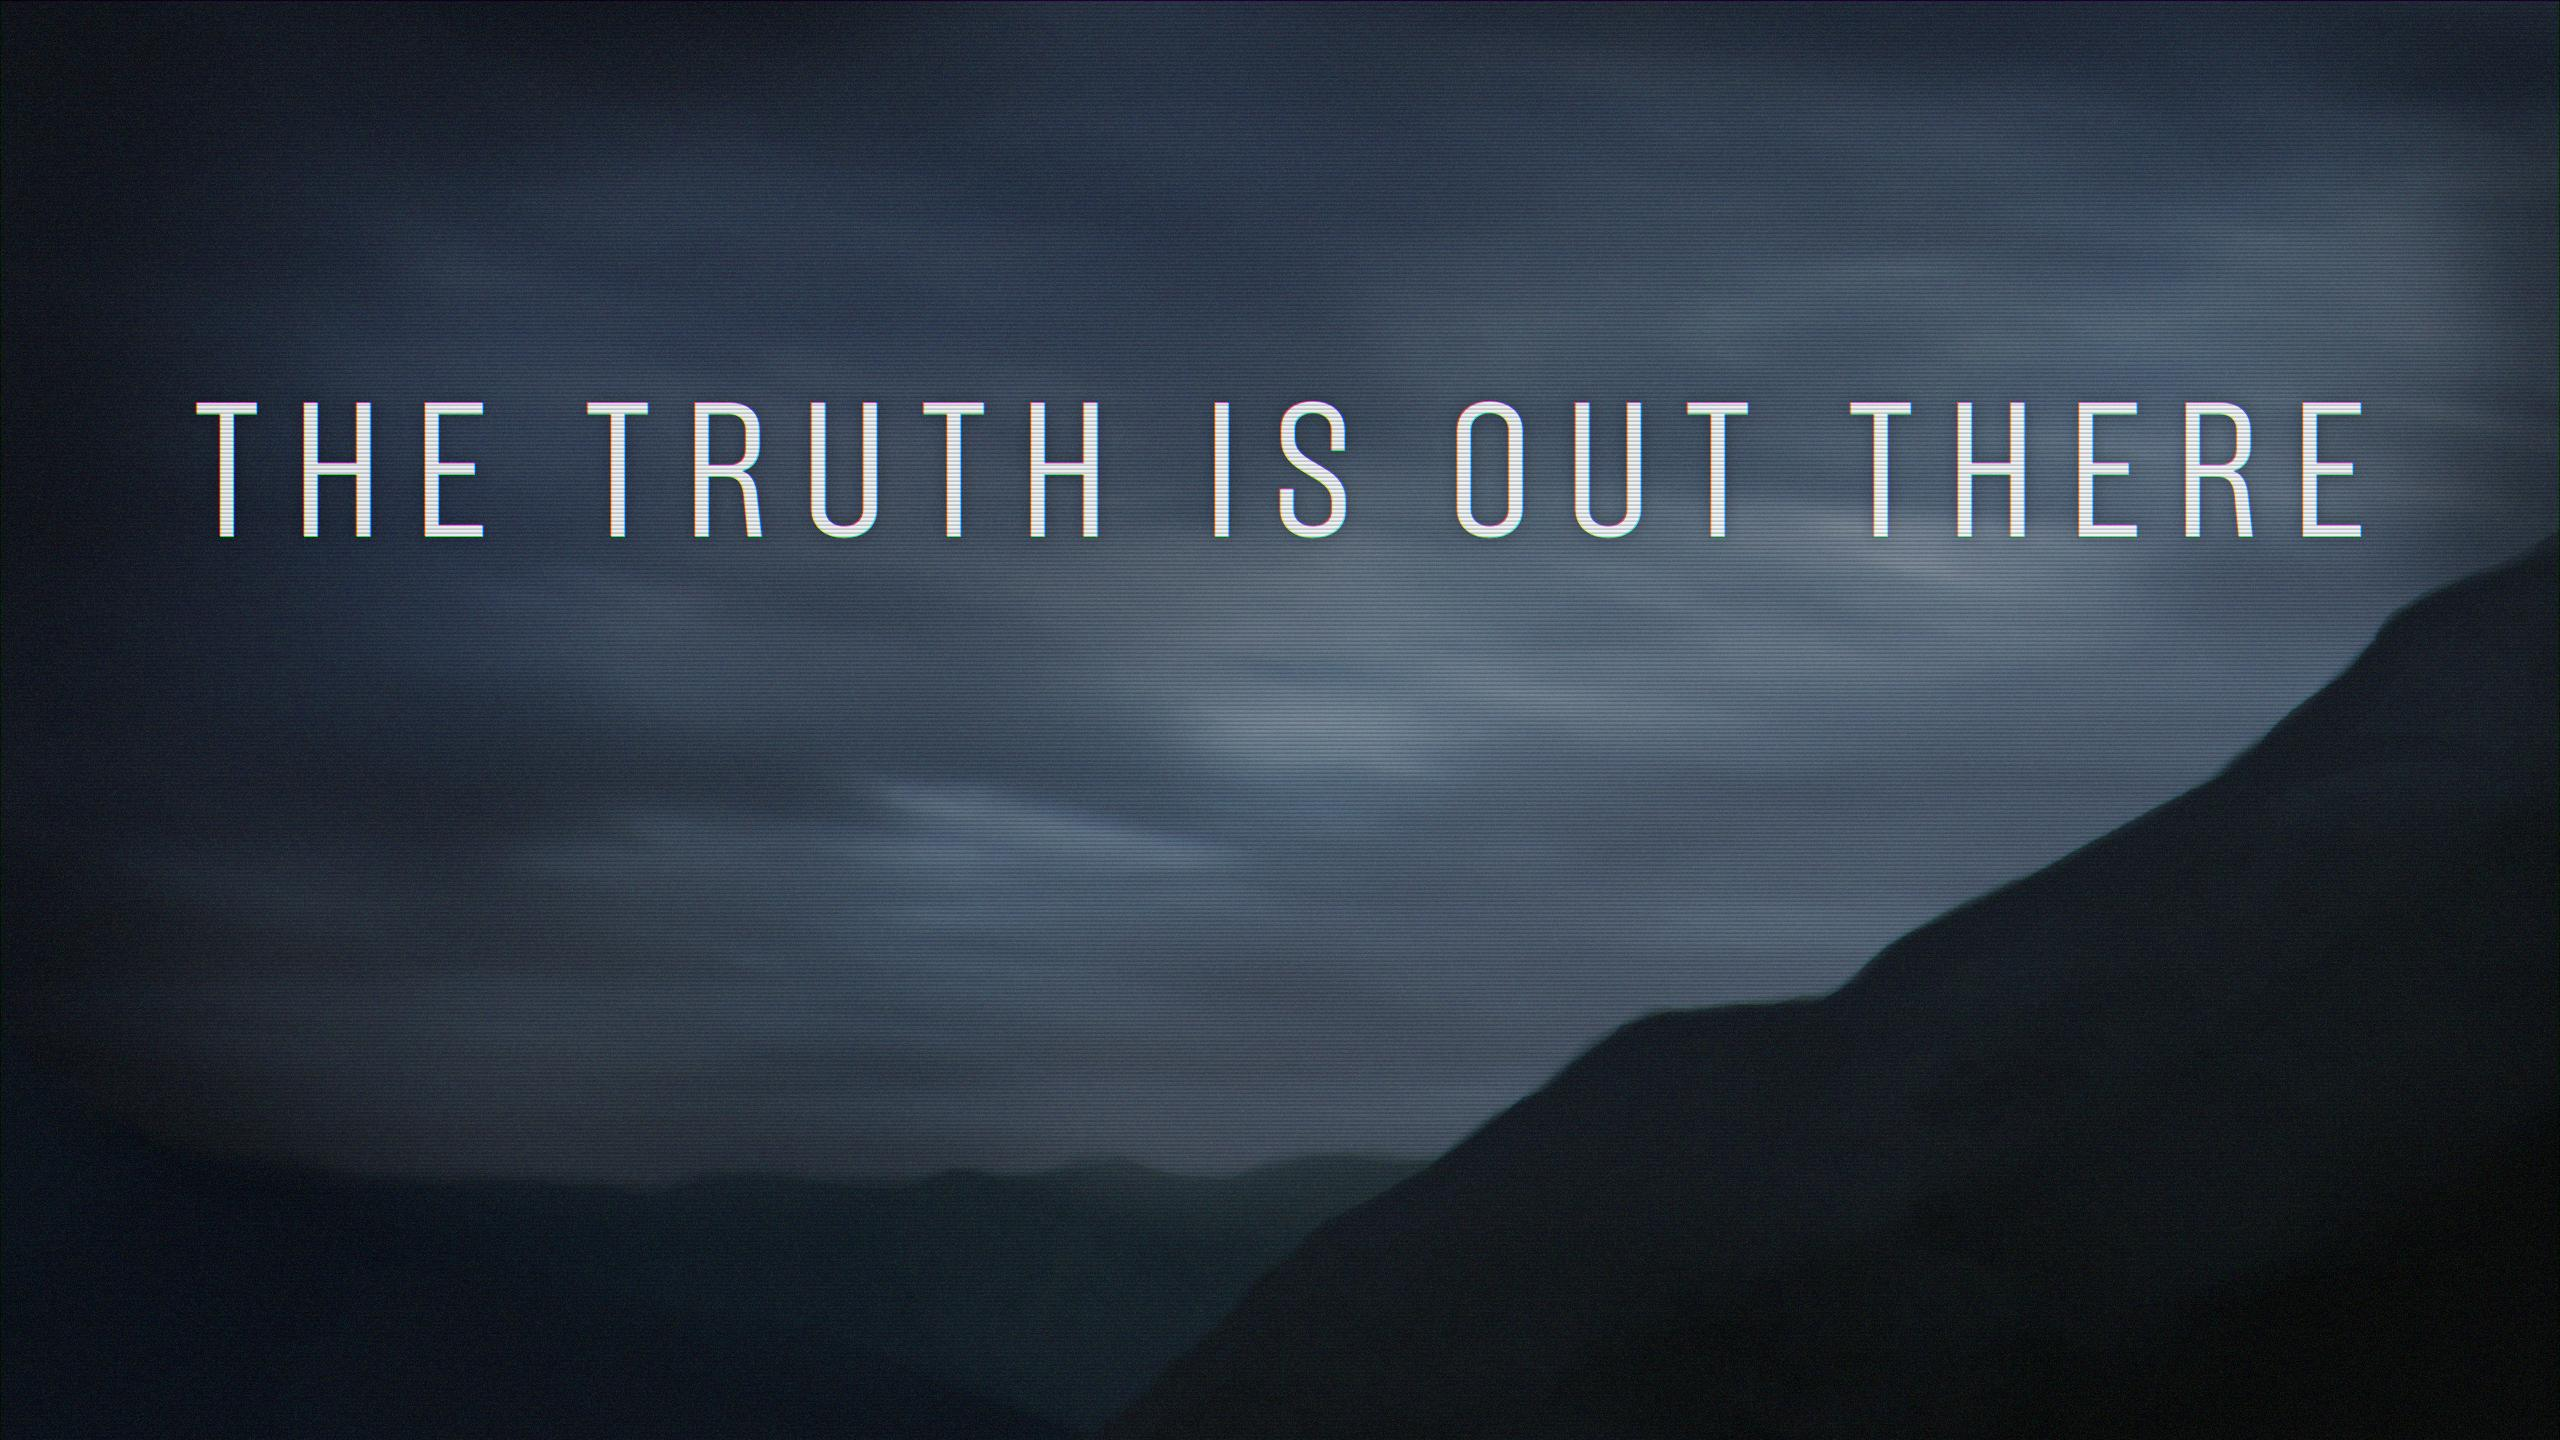 boingboing.net - David Pescovitz - The X-Files is coming back